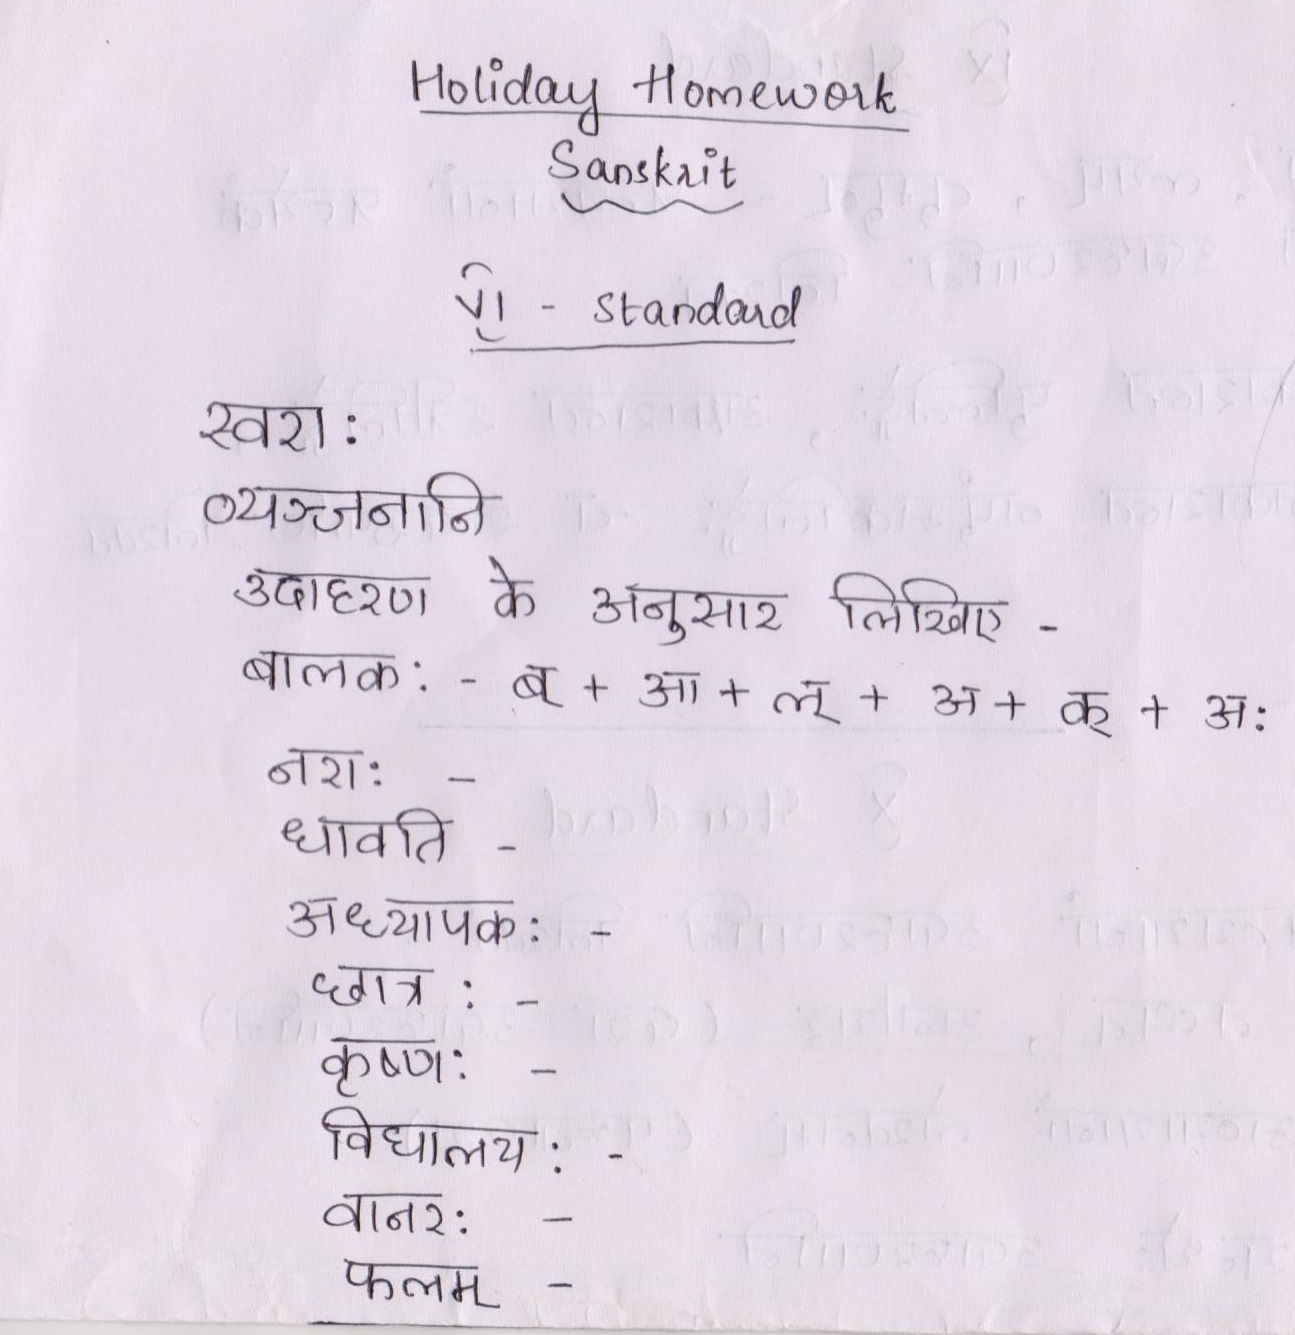 kv pangode holiday homework 2017